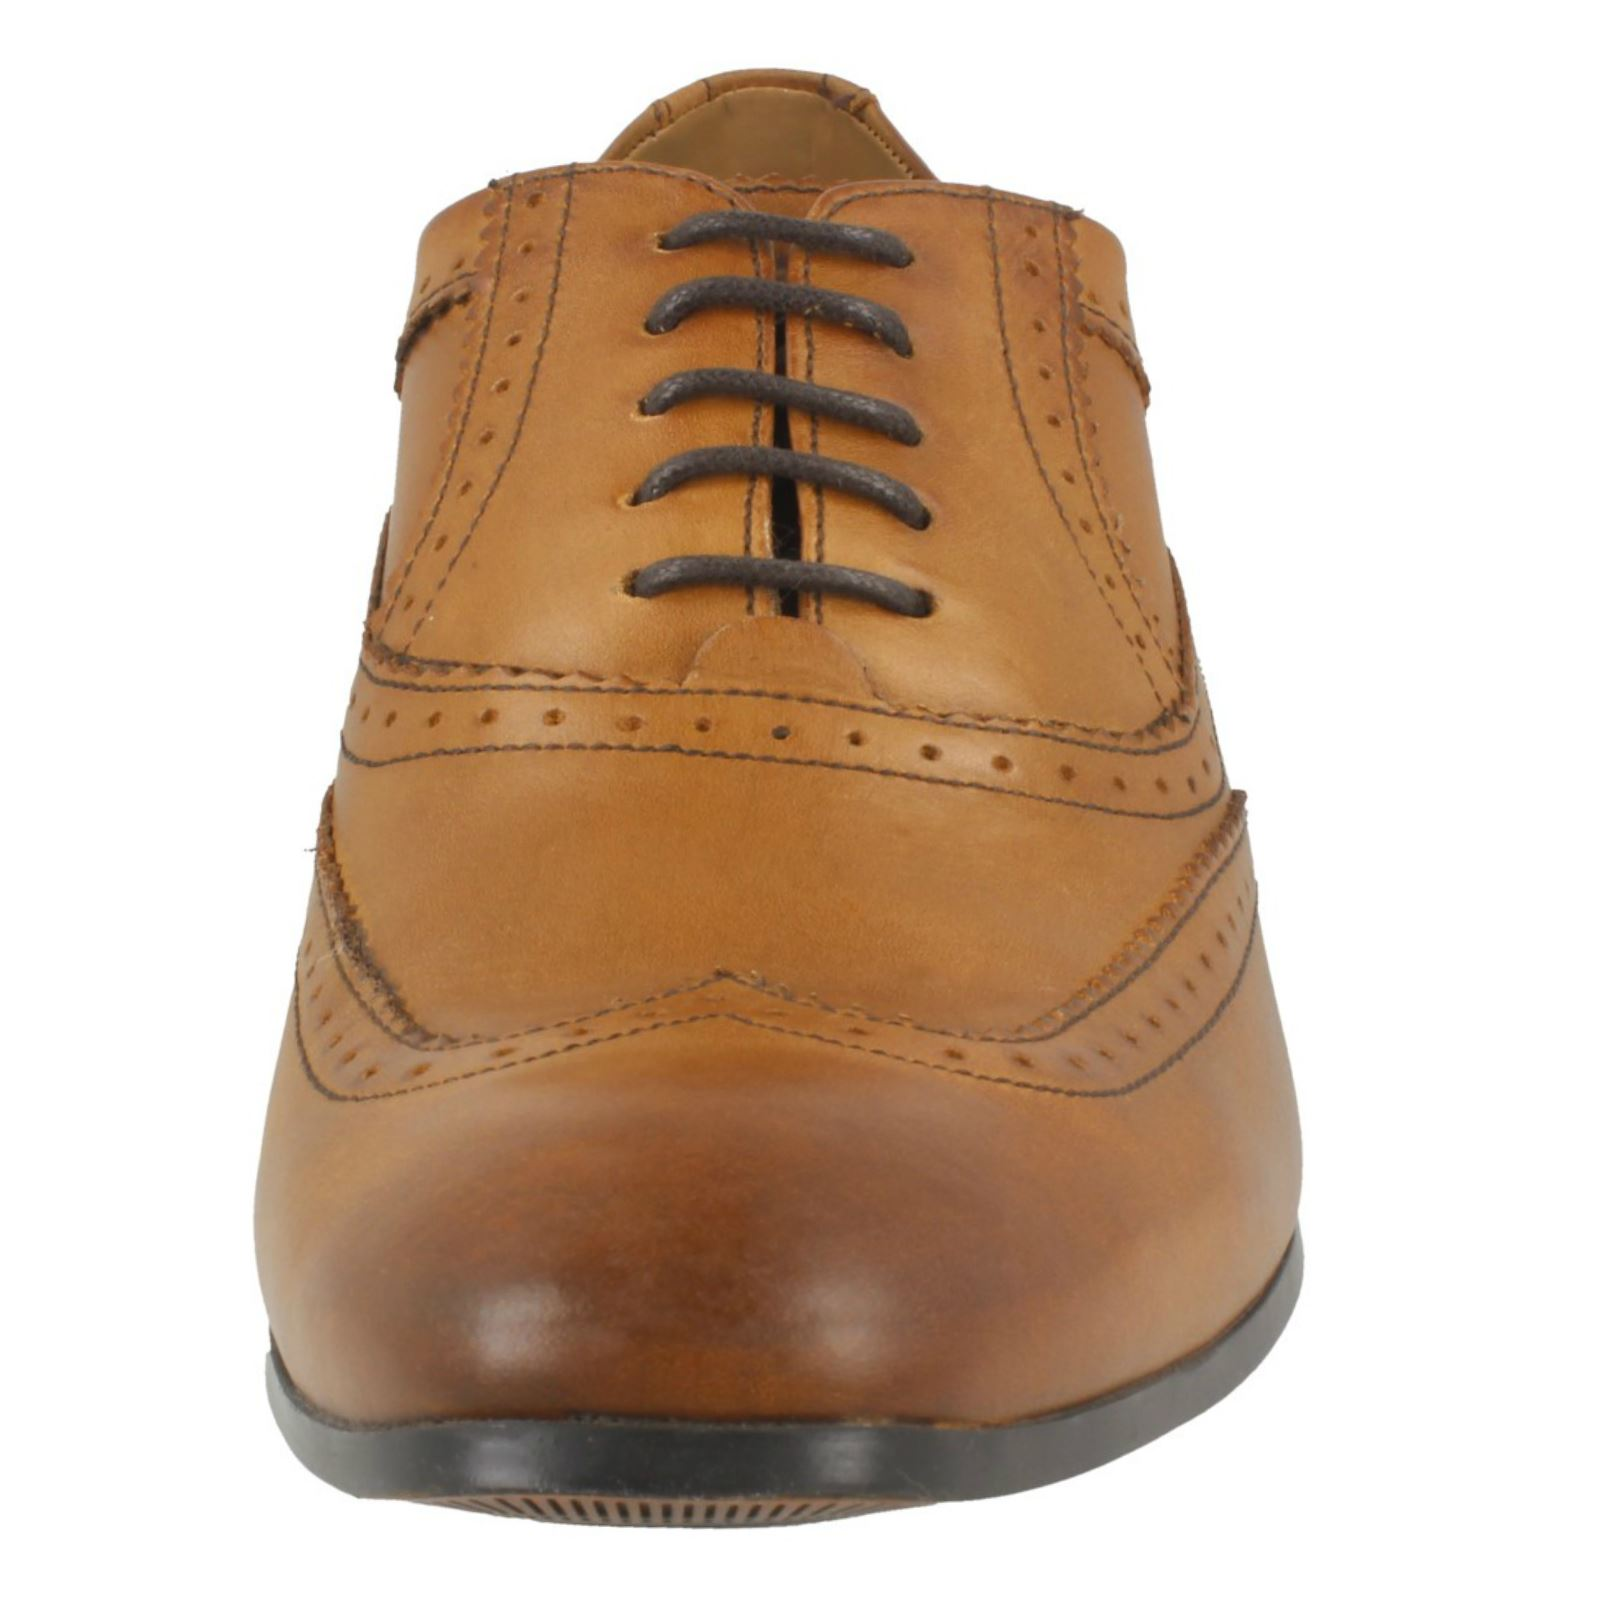 Herren Schuhes Base London Lace Up Schuhes Herren Court 1a07ab